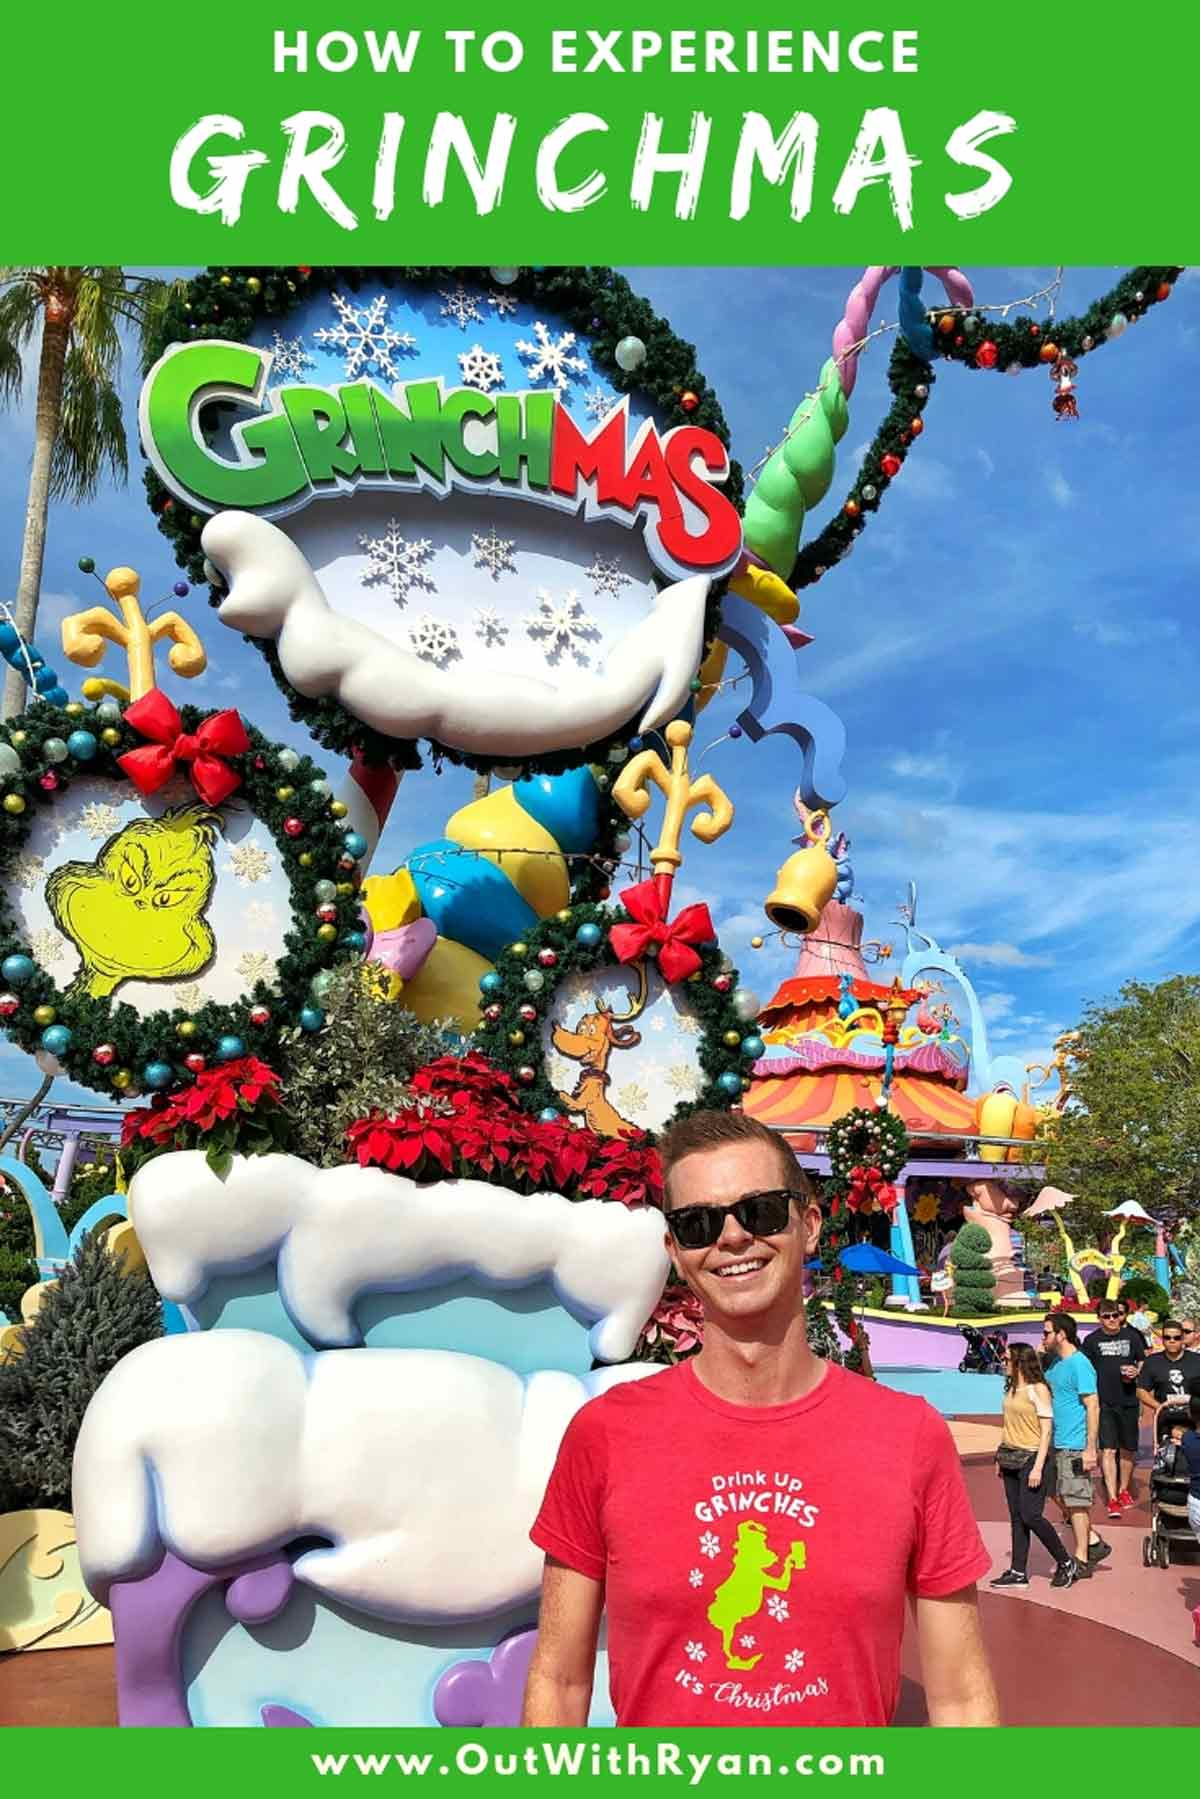 Celebrate Grinchmas Who-liday Spectacular at Universal Orlando Resort